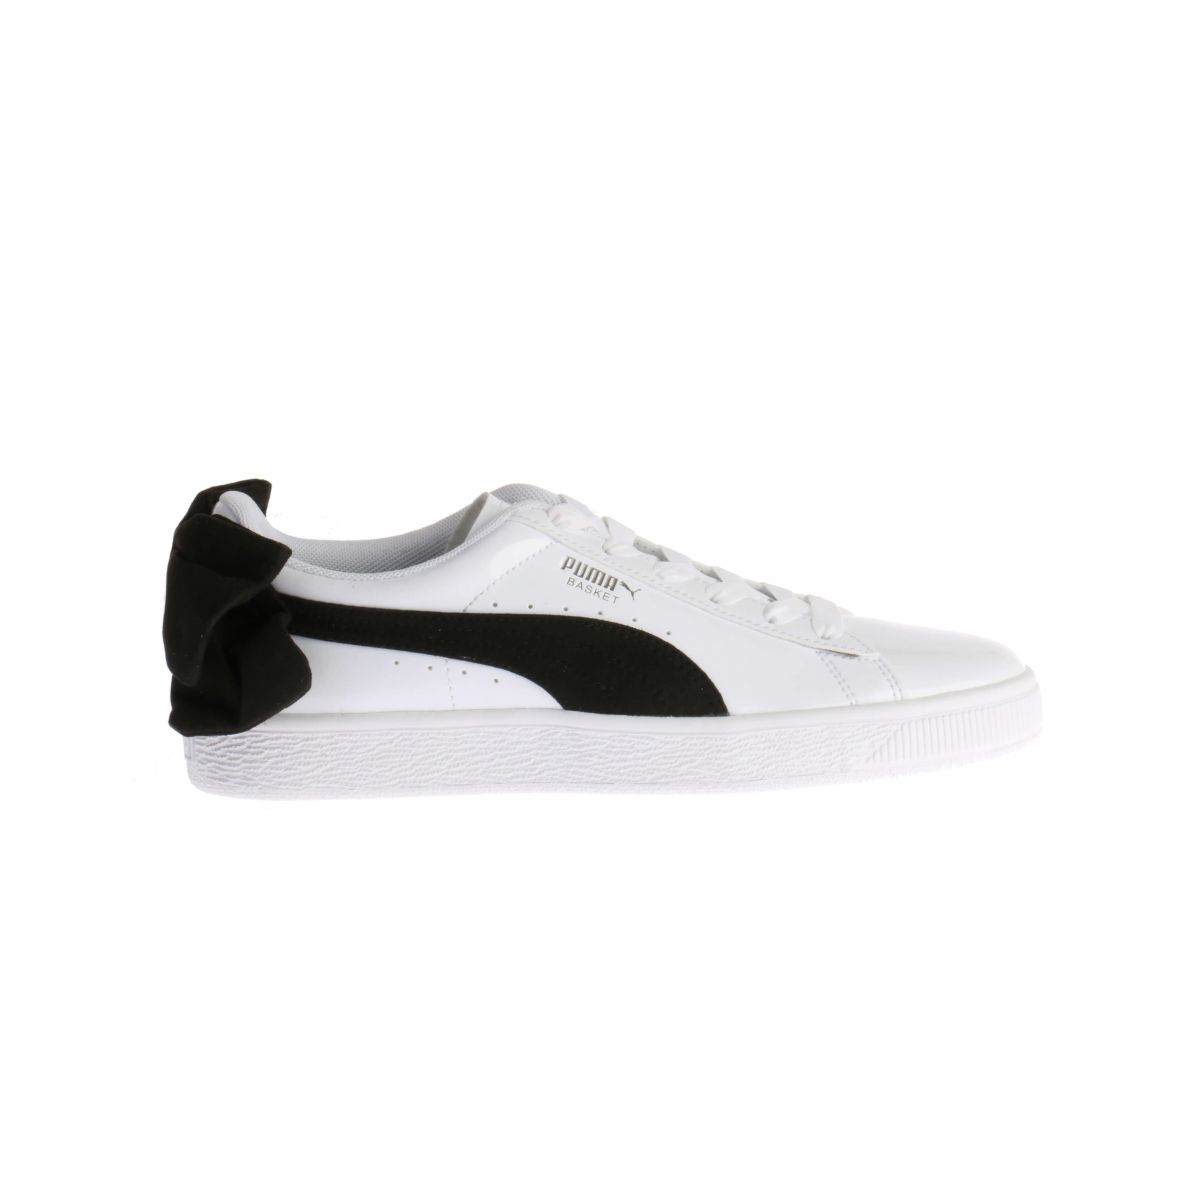 Puma Basket Bow SB Wit